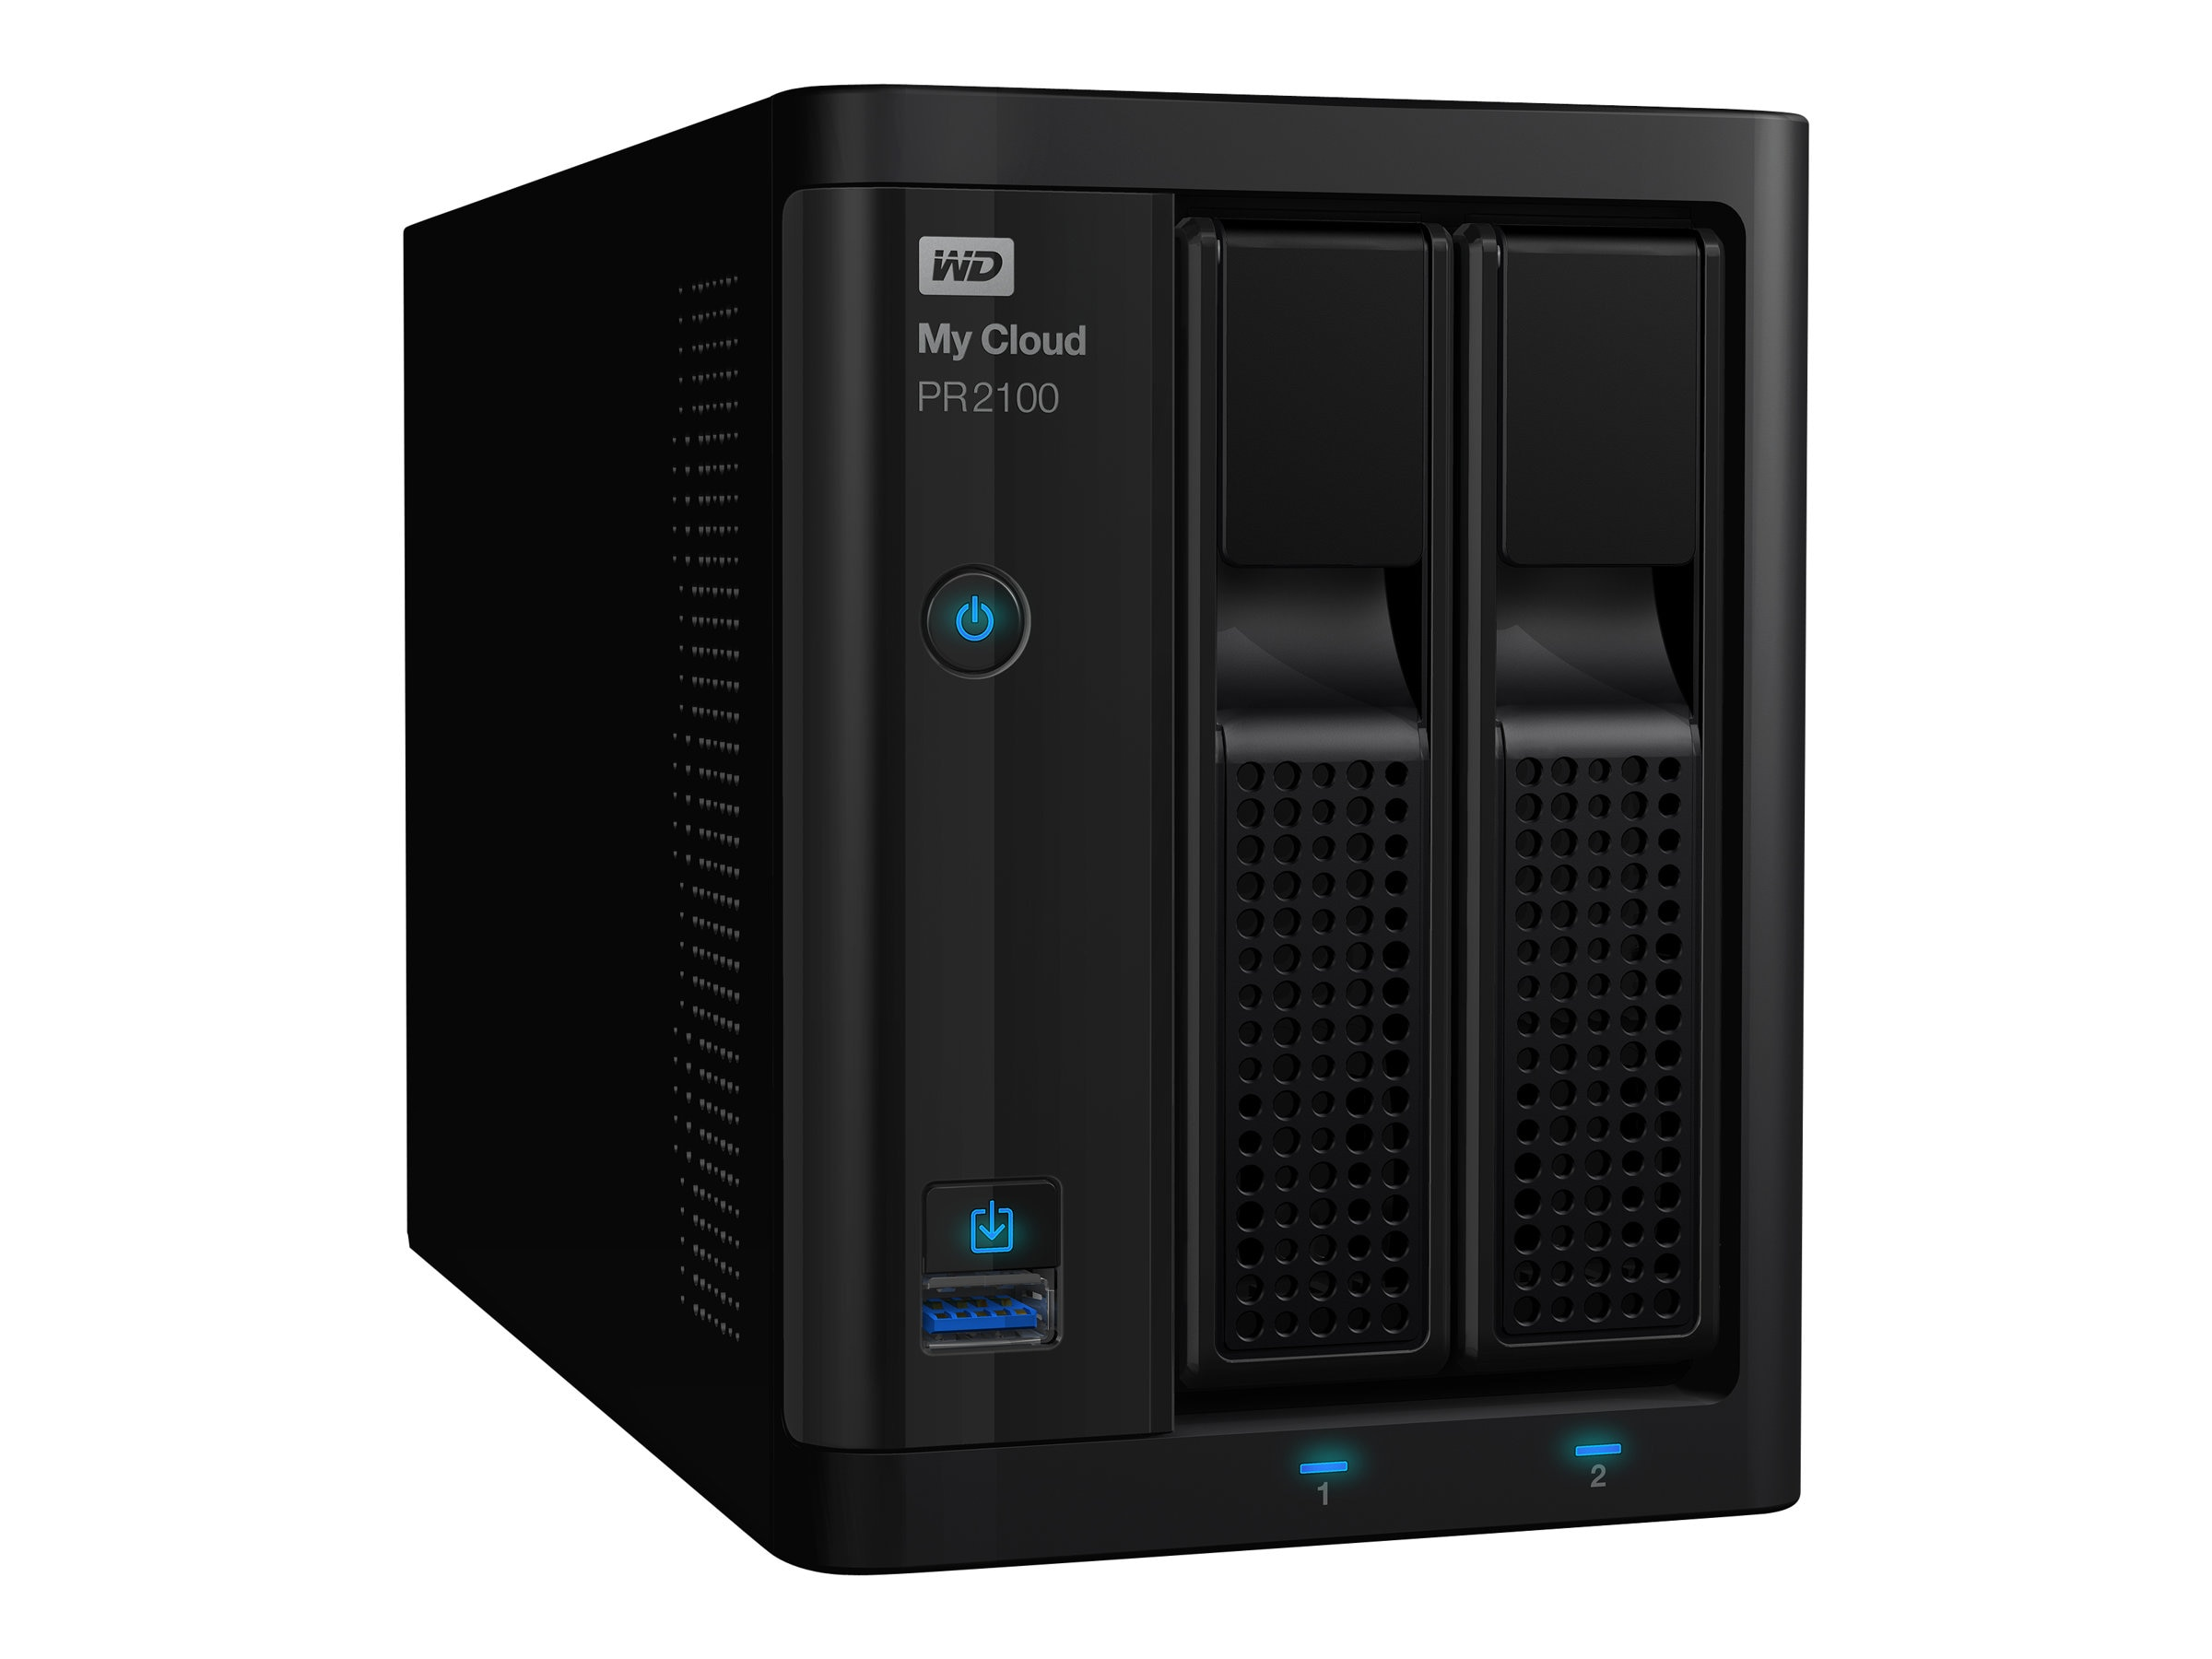 WD My Cloud Pro Series PR2100 Storage - Diskless, WDBBCL0000NBK-NESN